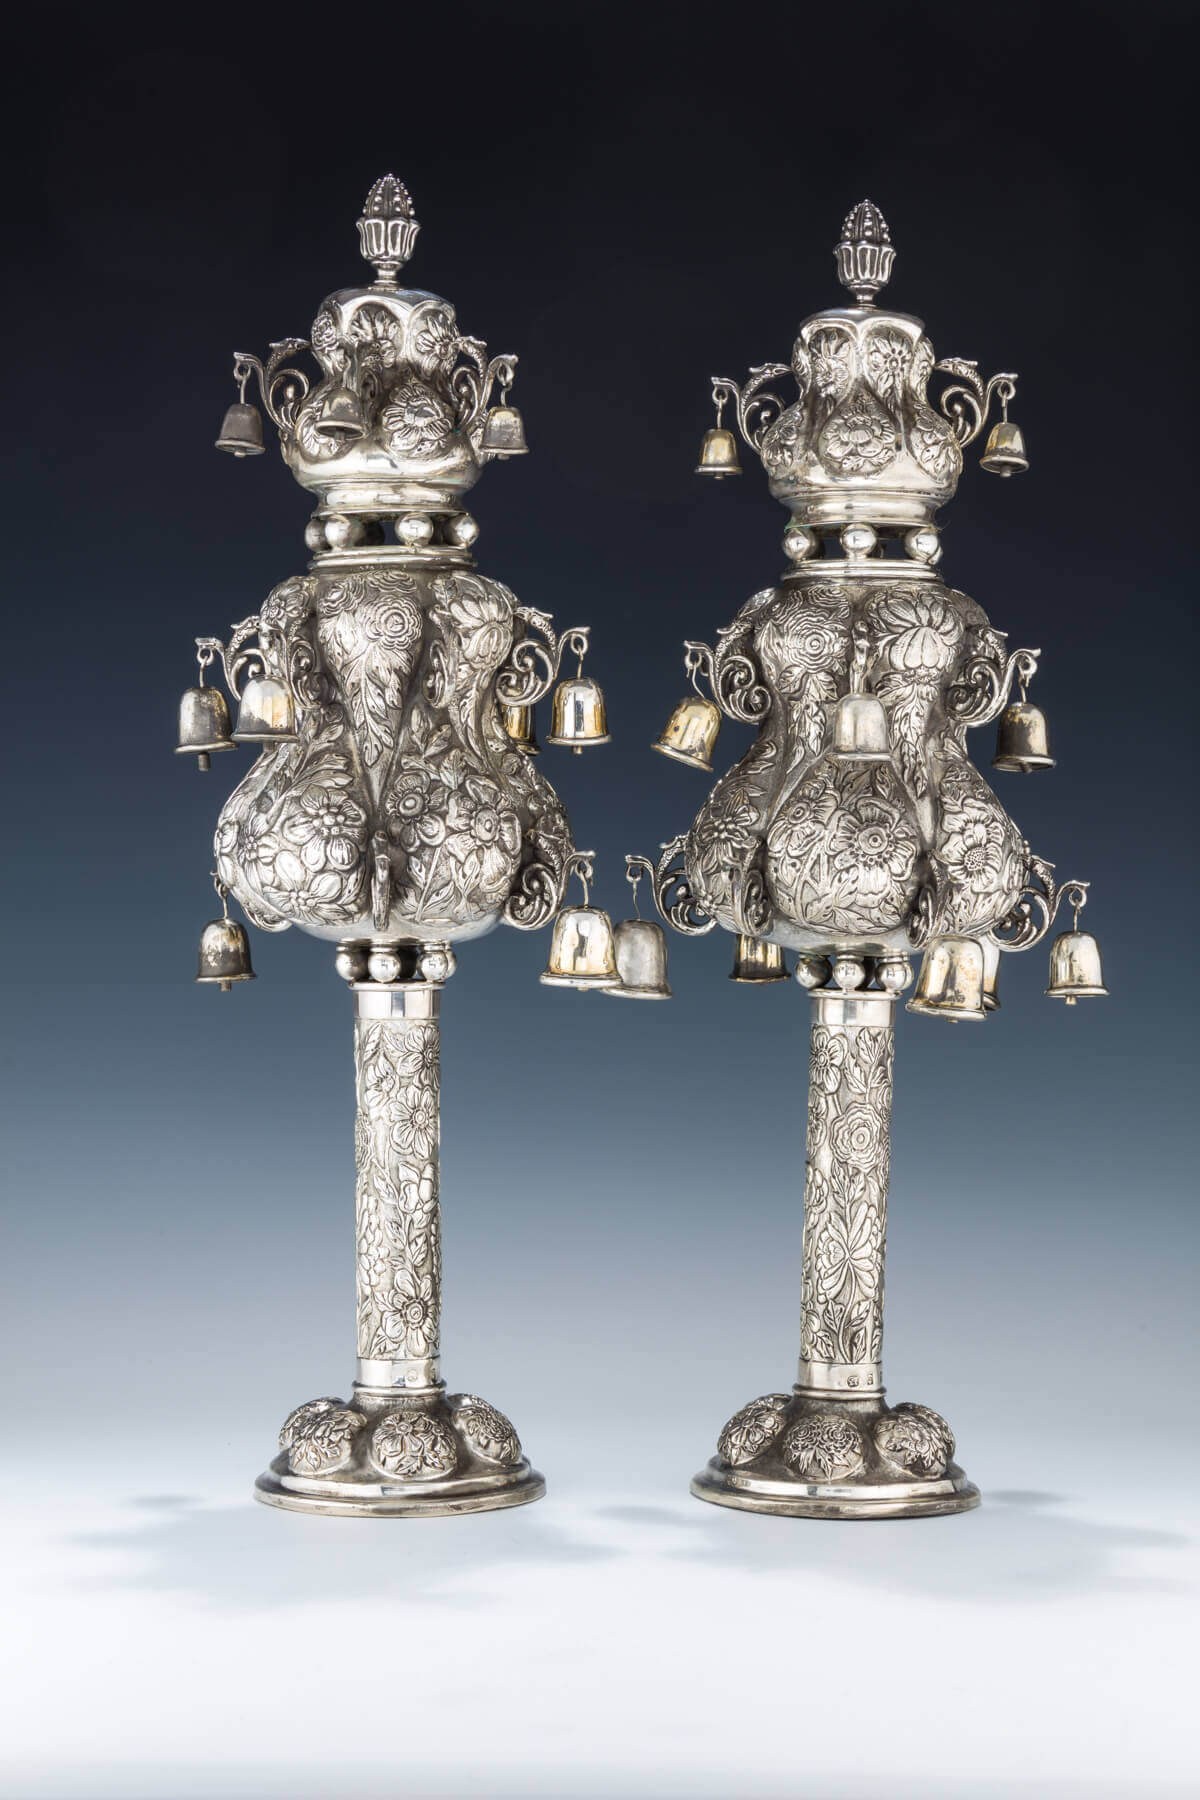 150. A MONUMENTAL PAIR OF SILVER TORAH FINIALS